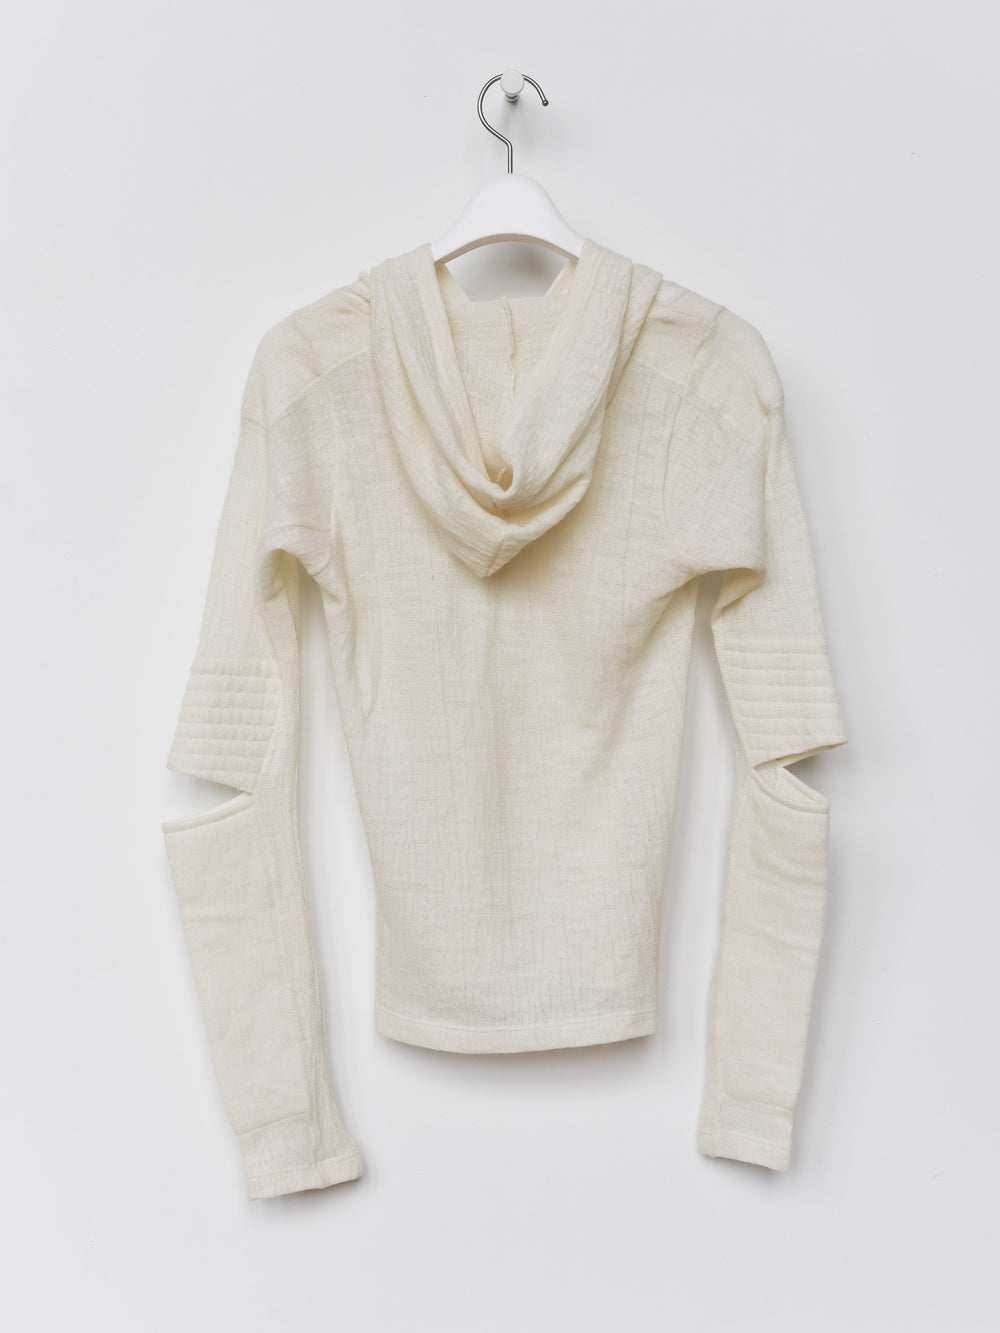 Helmut Lang AW99 Astro Biker Sheer Cutout Hooded Sweater